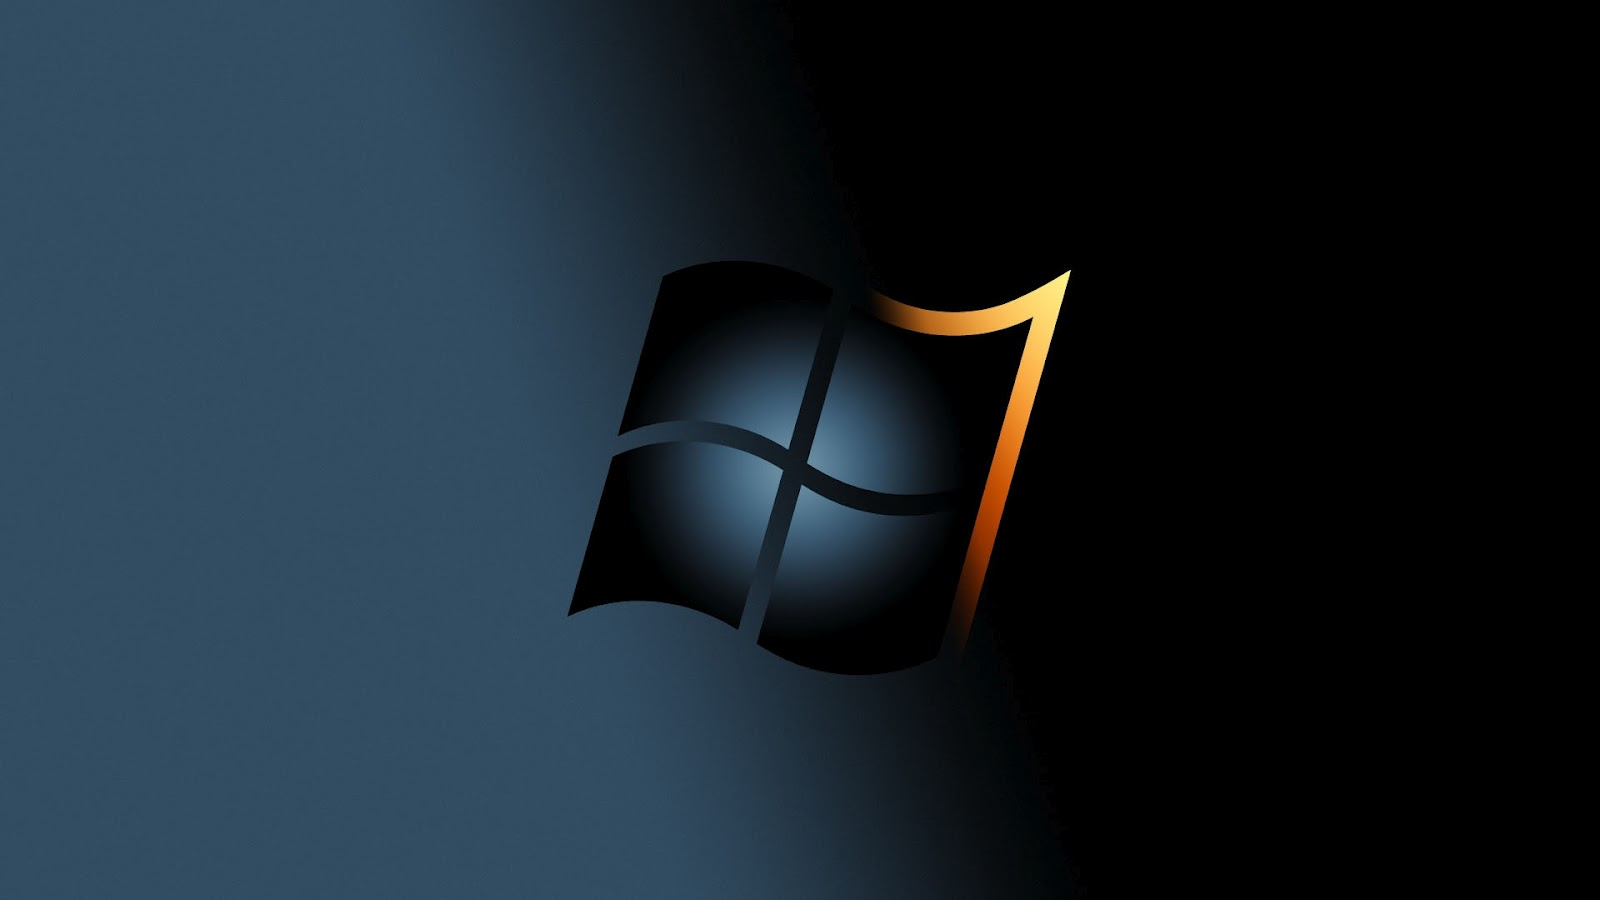 Hd wallpapers hd wallpapers of windows 7 for 3d home wallpaper for pc